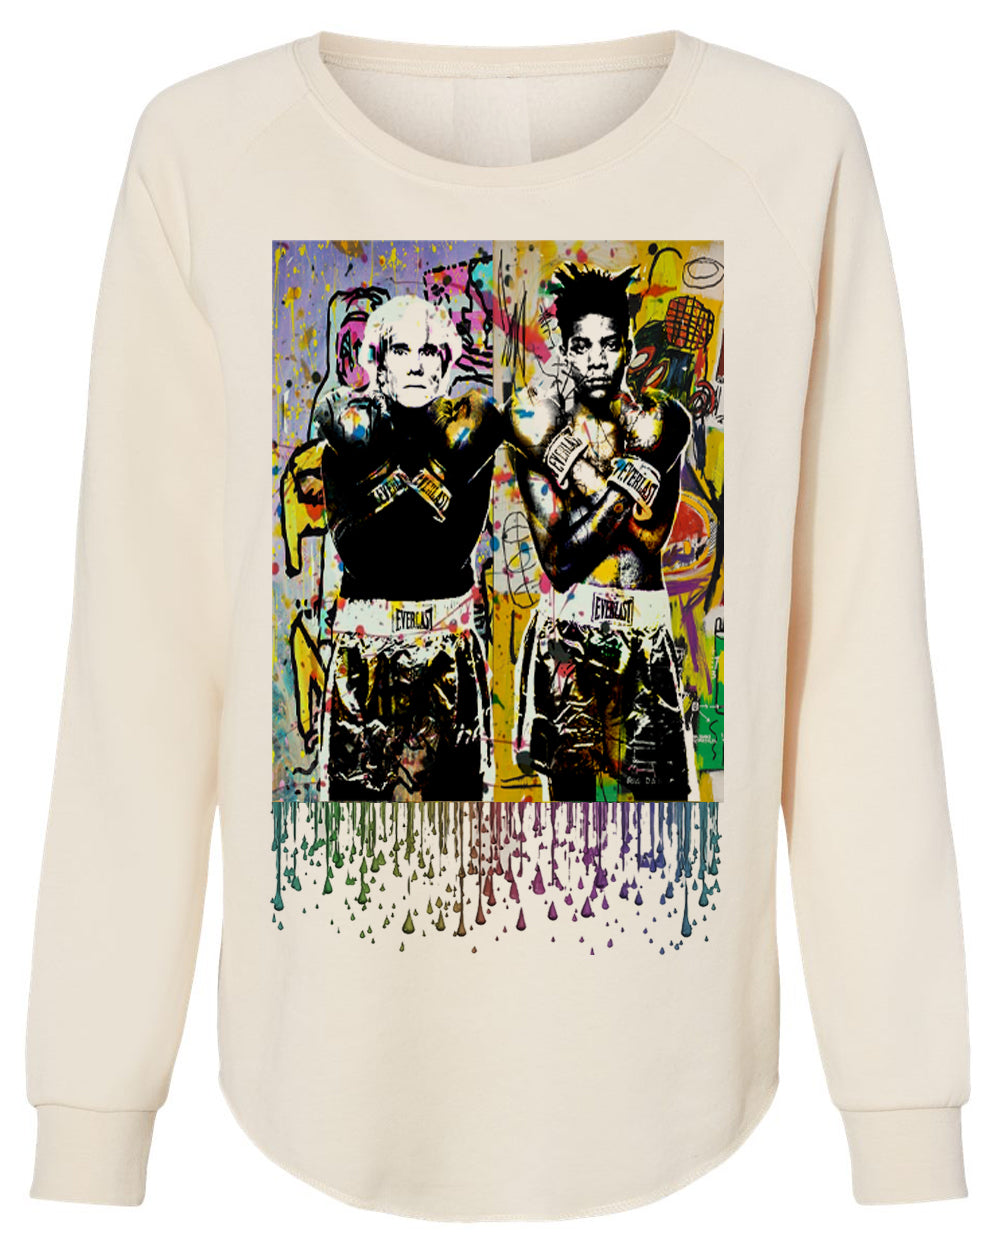 ART FUSION (BASQUIAT/WARHOL)-FRENCH TERRY SWEATER